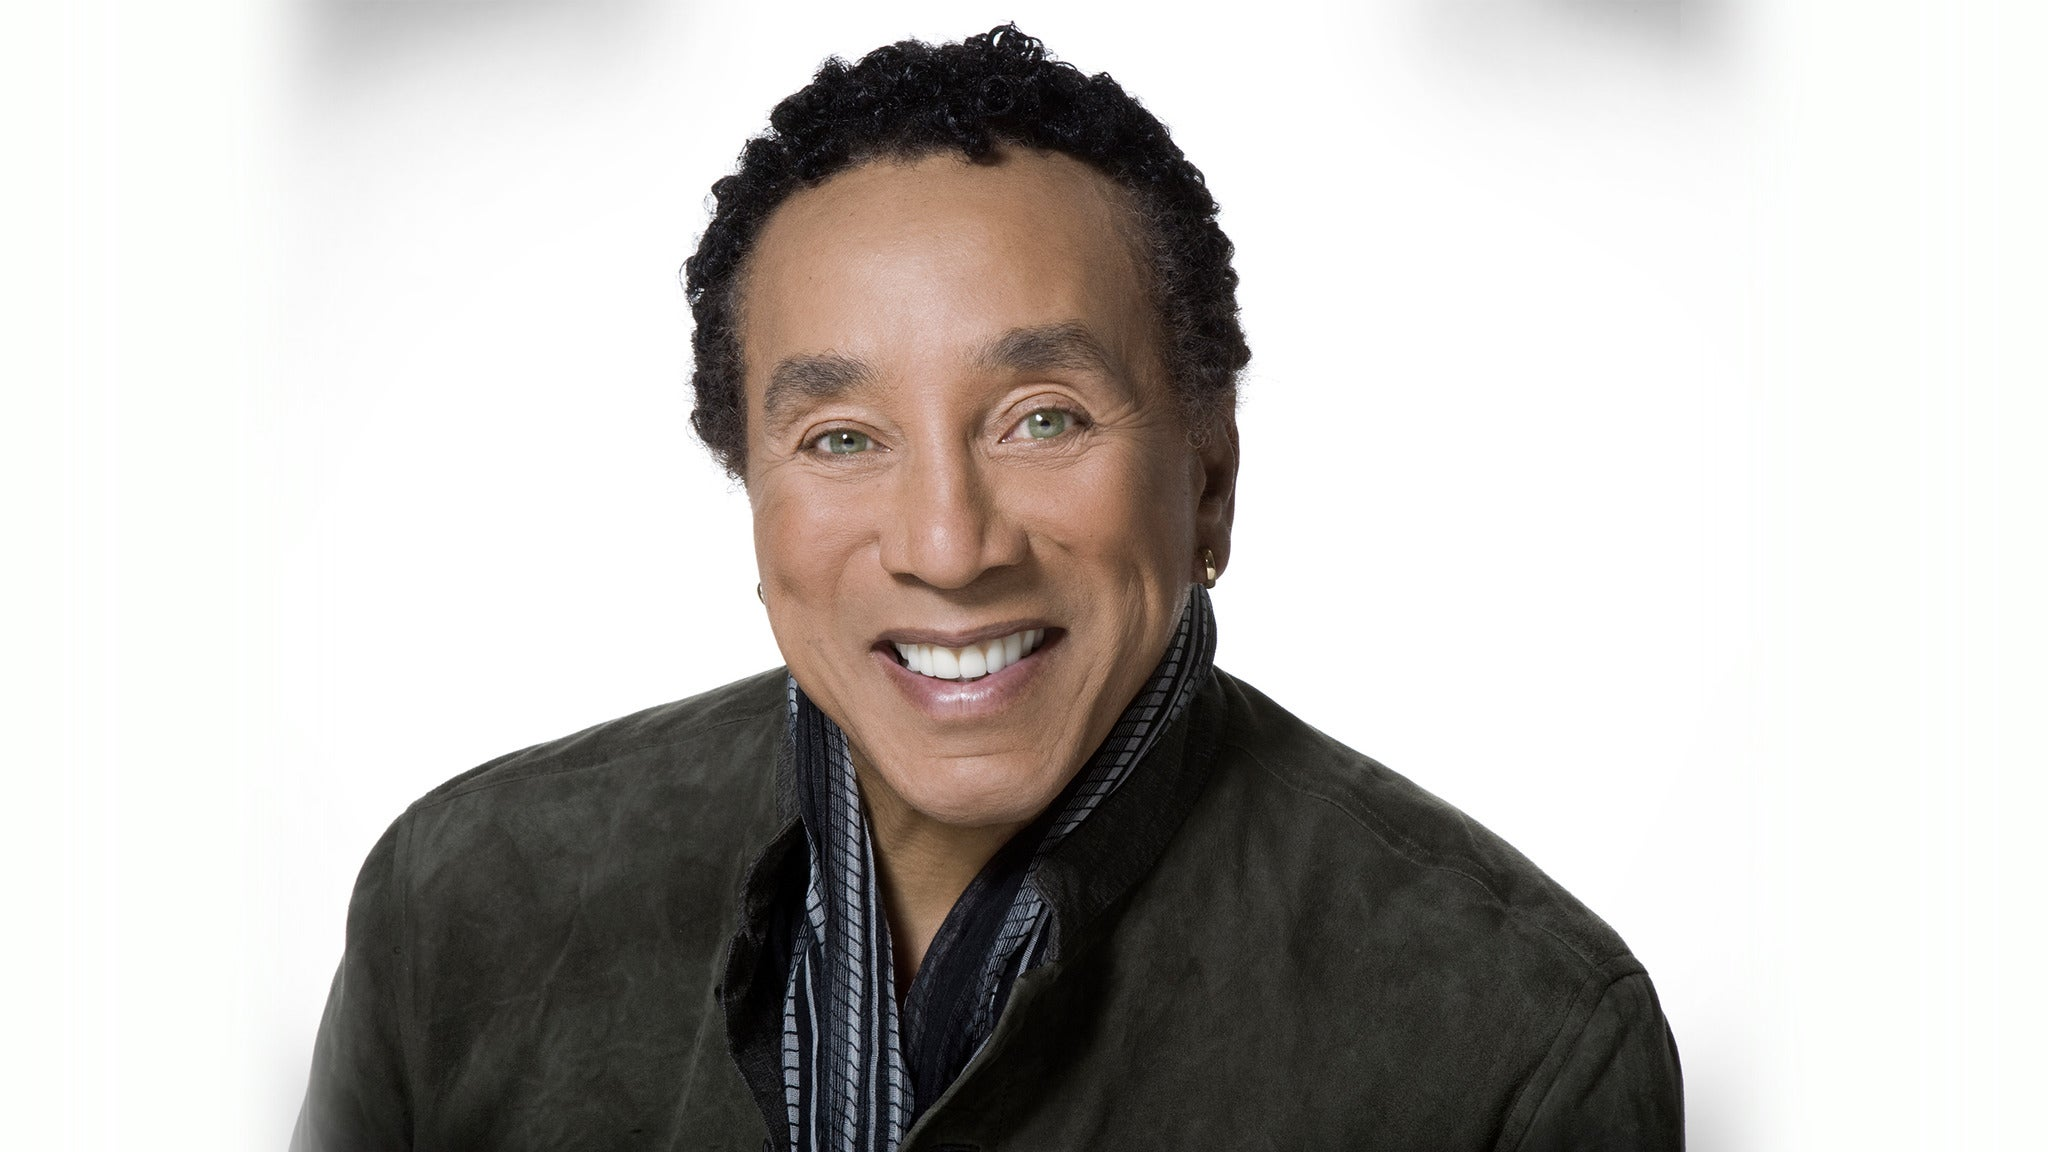 Smokey Robinson at Pechanga Resort and Casino